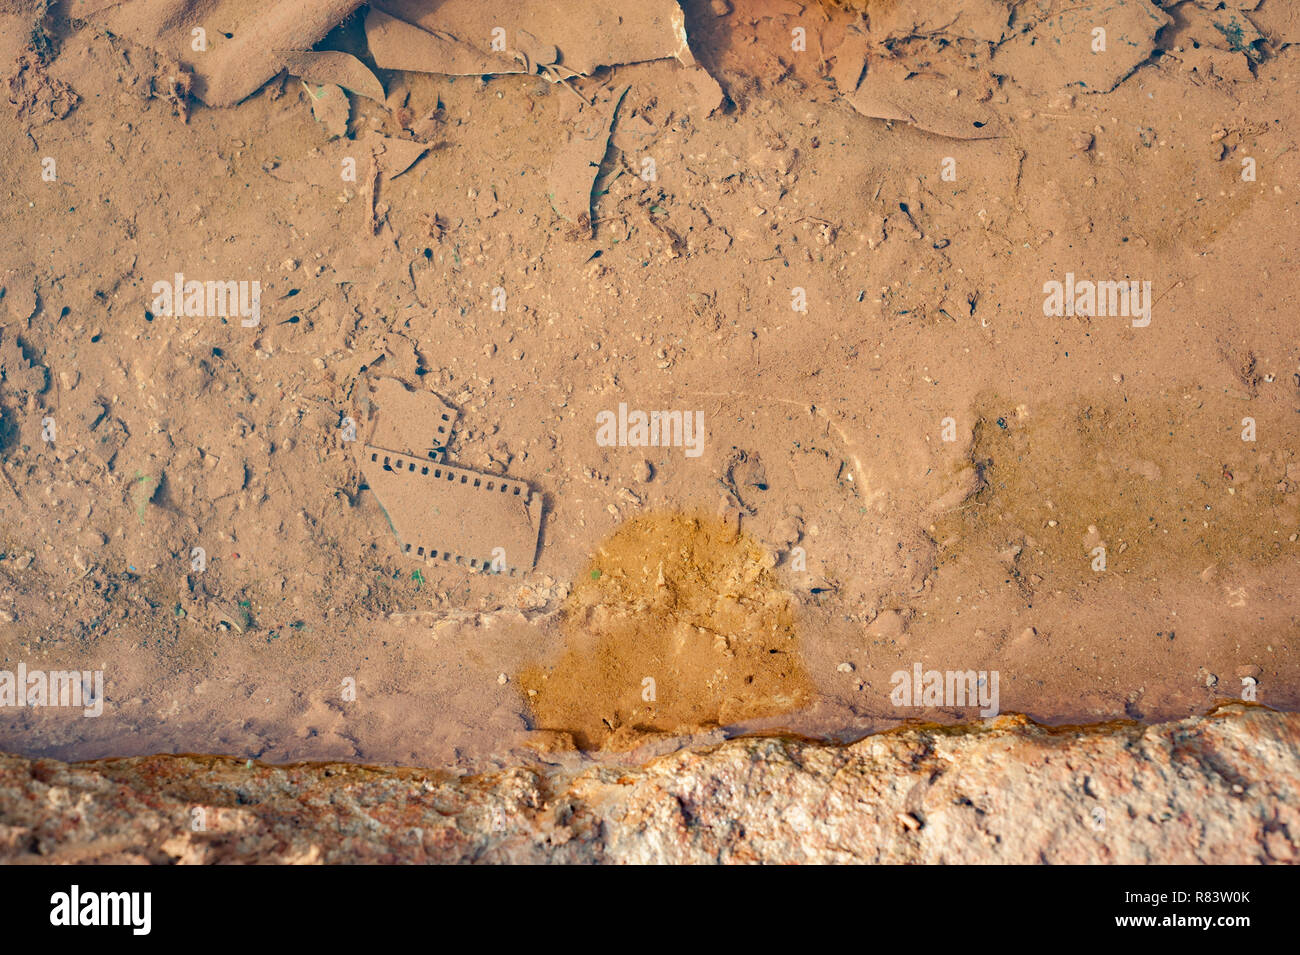 Mali, Africa. Dirty water puddles in a rural village near Bamako containing an old ruined film slide for photography - Stock Image